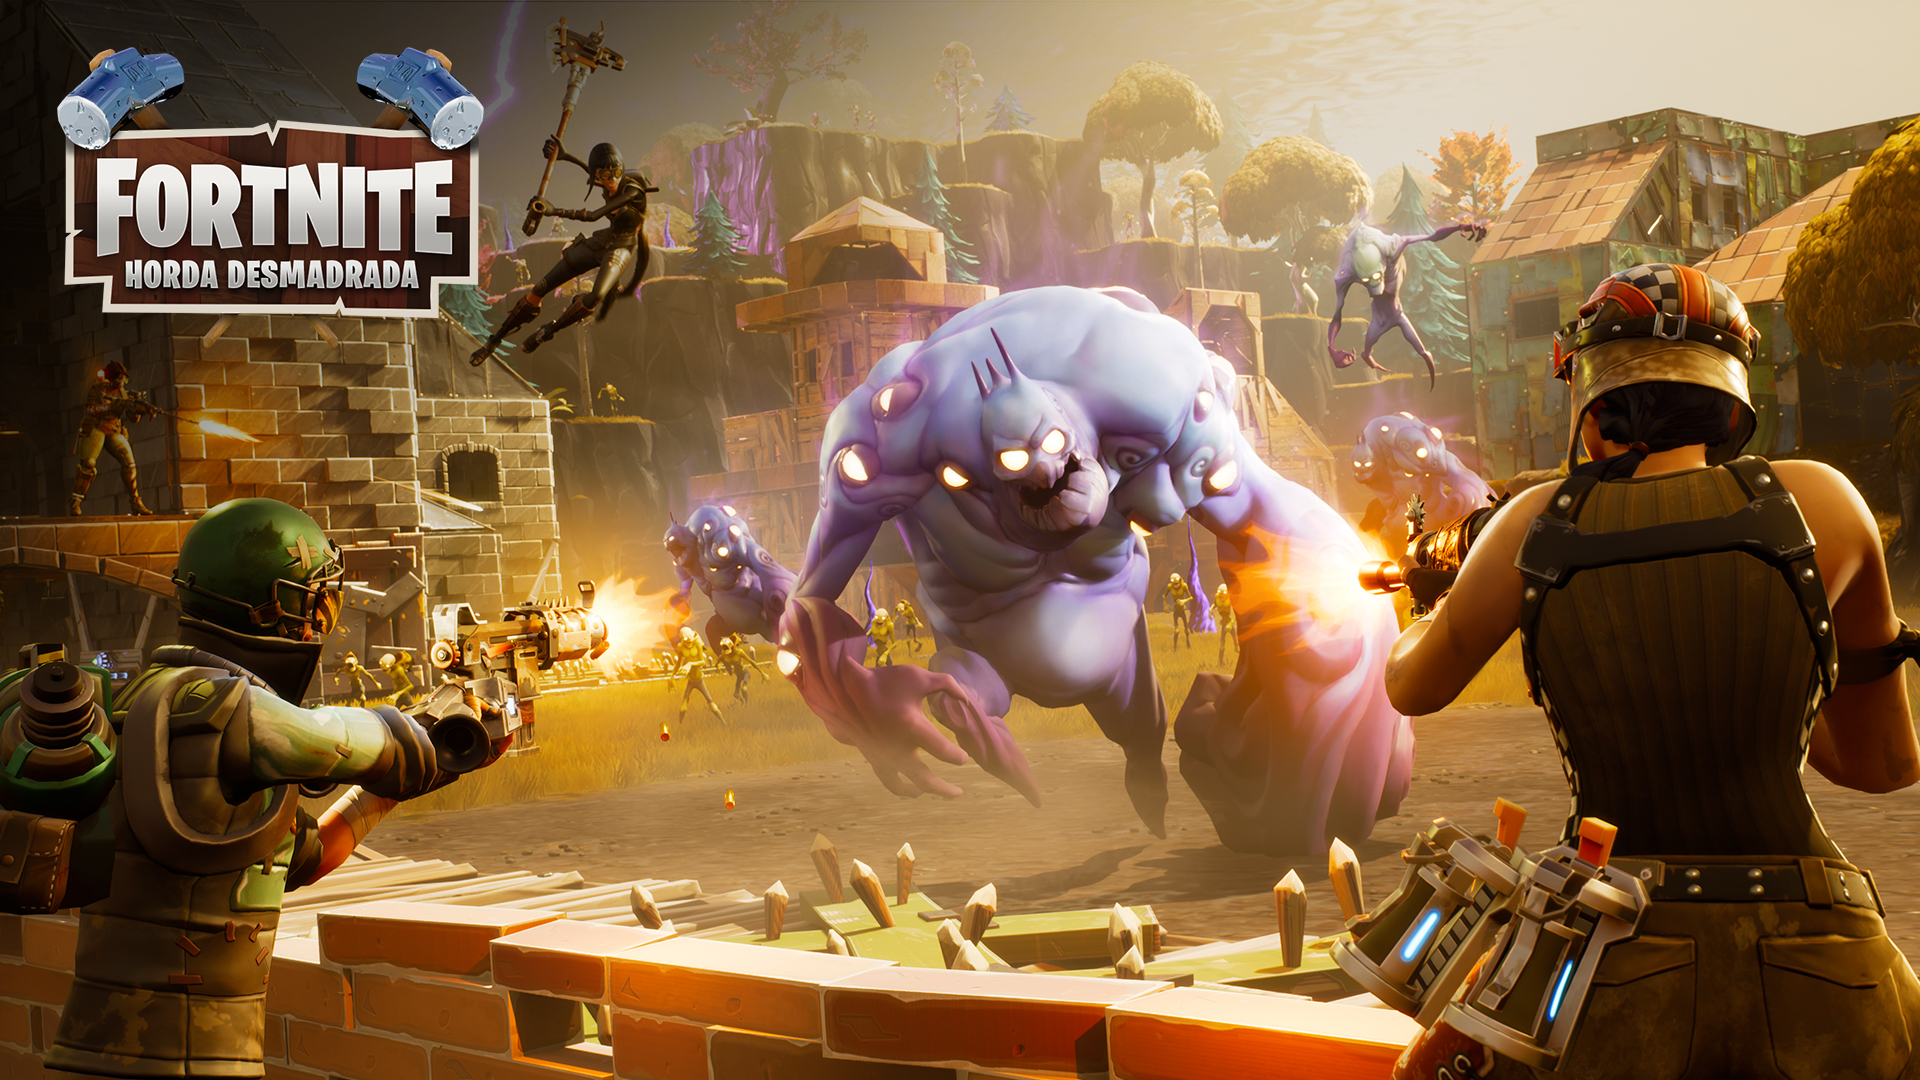 Fortnite%2Fblog%2Fea-1-7-patch-notes%2FES-MX-HB-GamePlay-1920x1080-fe9aedec79d84761b584827a800f1f684a238755